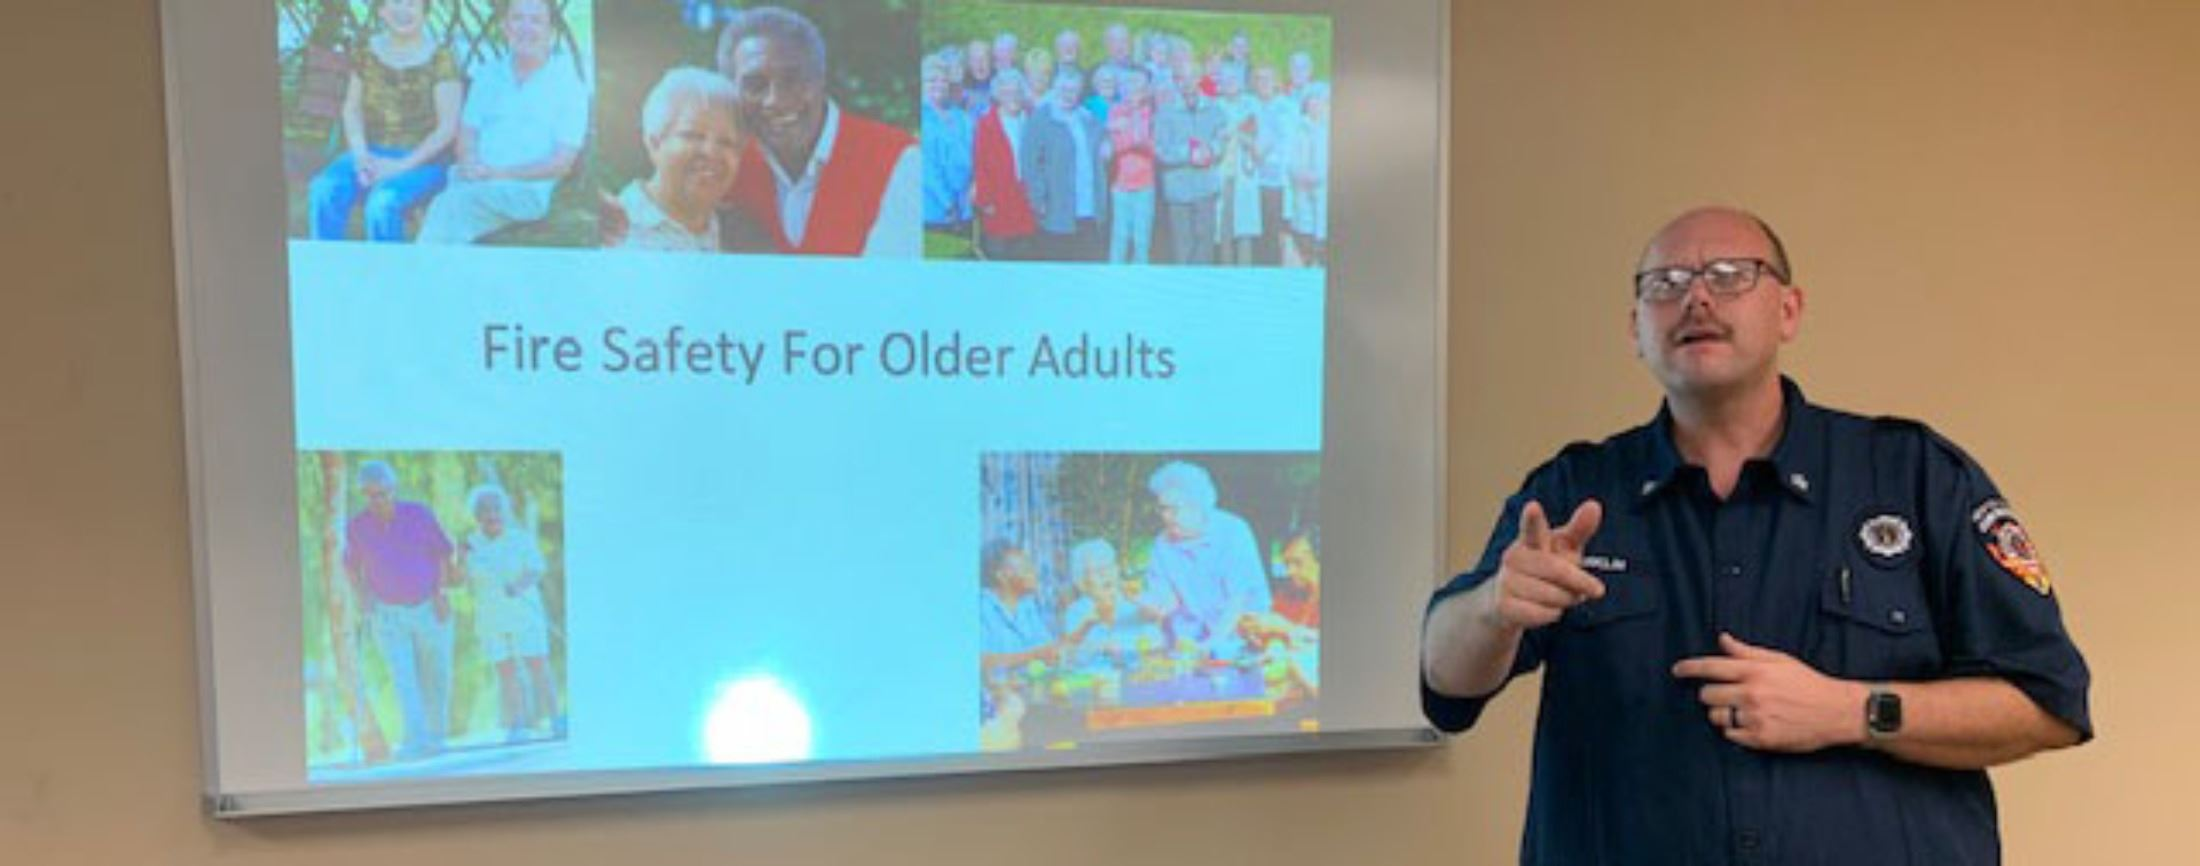 Image of Educating seniors to ensure a safe and secure community